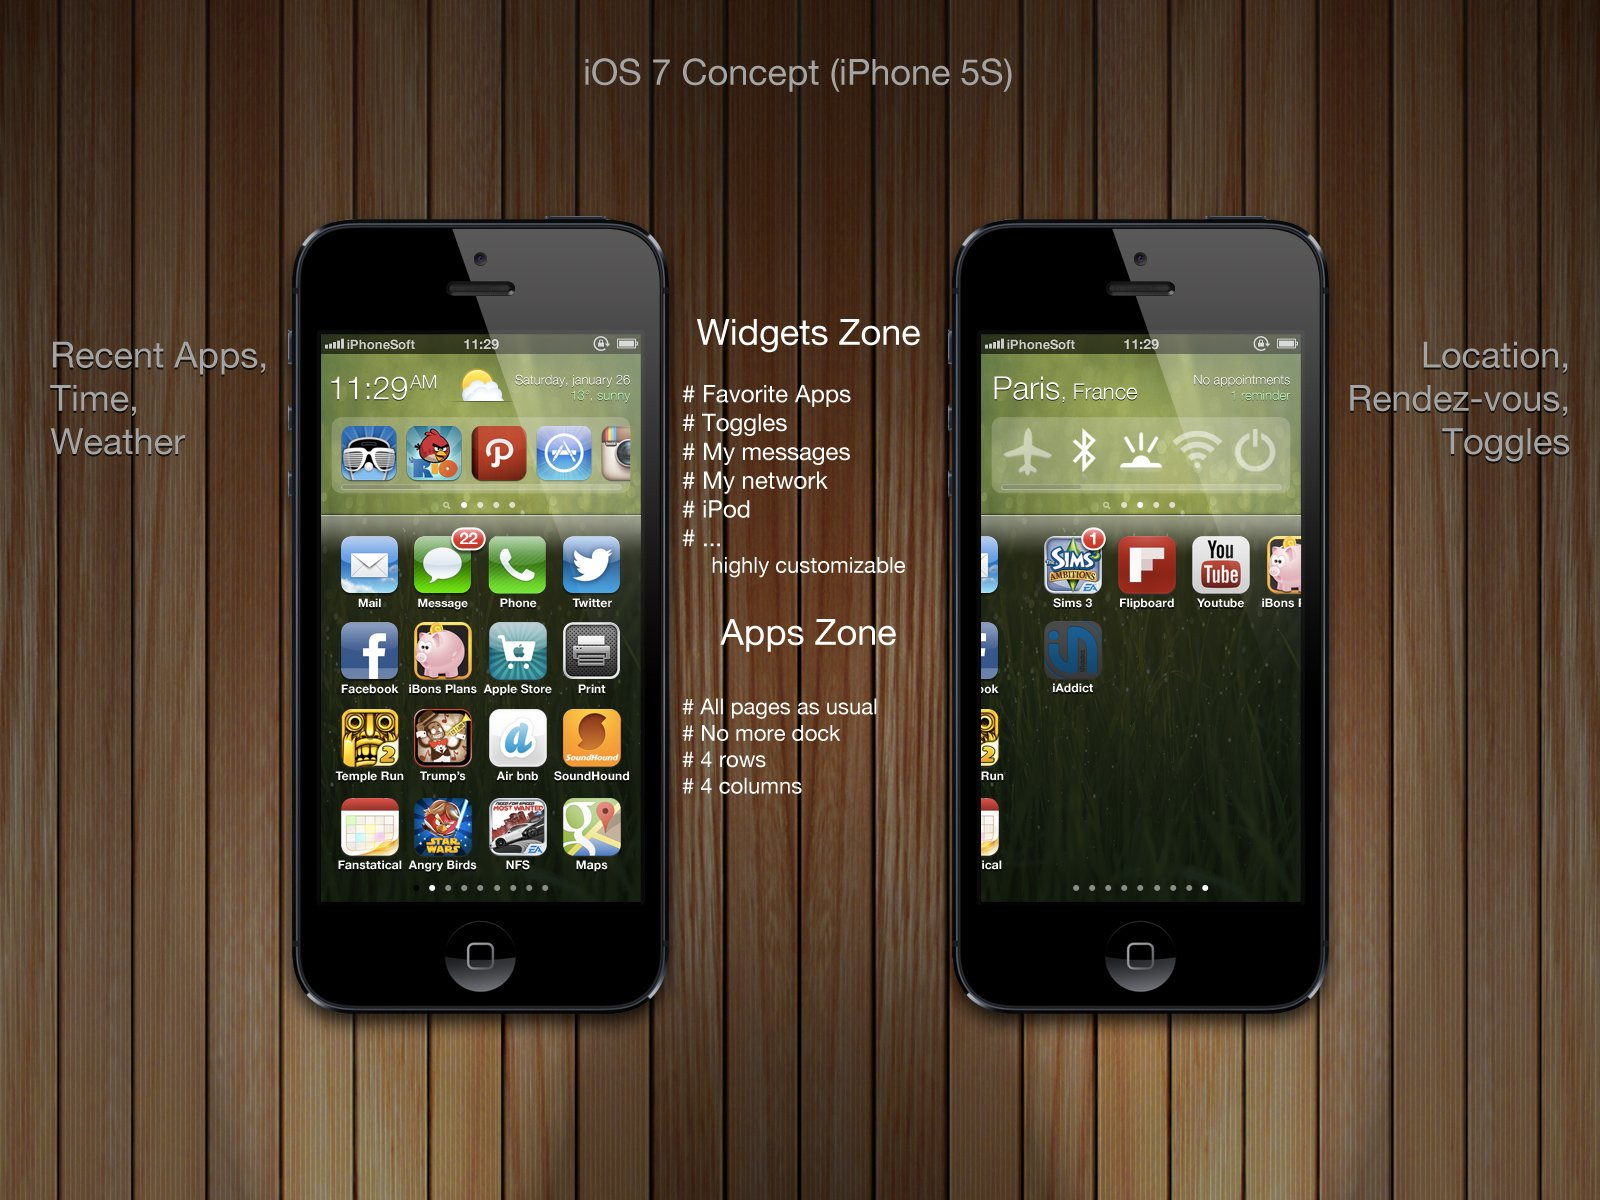 An iOS 7 concept